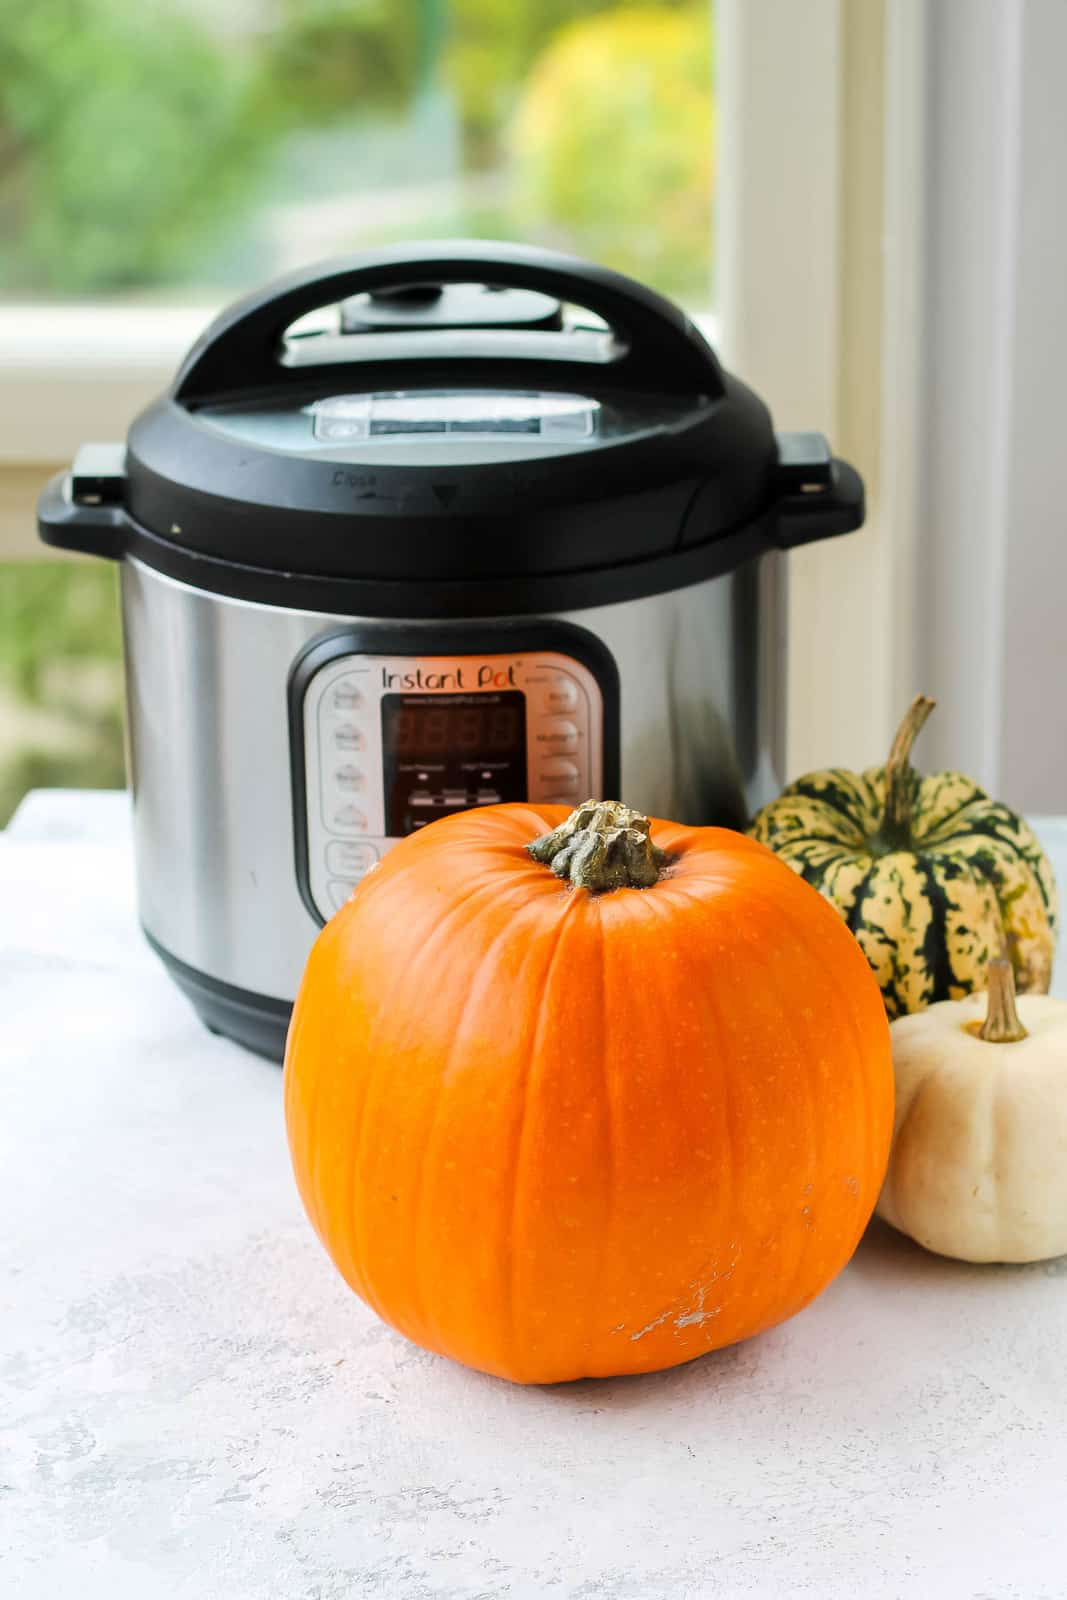 a pumpkin and two smaller squash in front of an instant pot